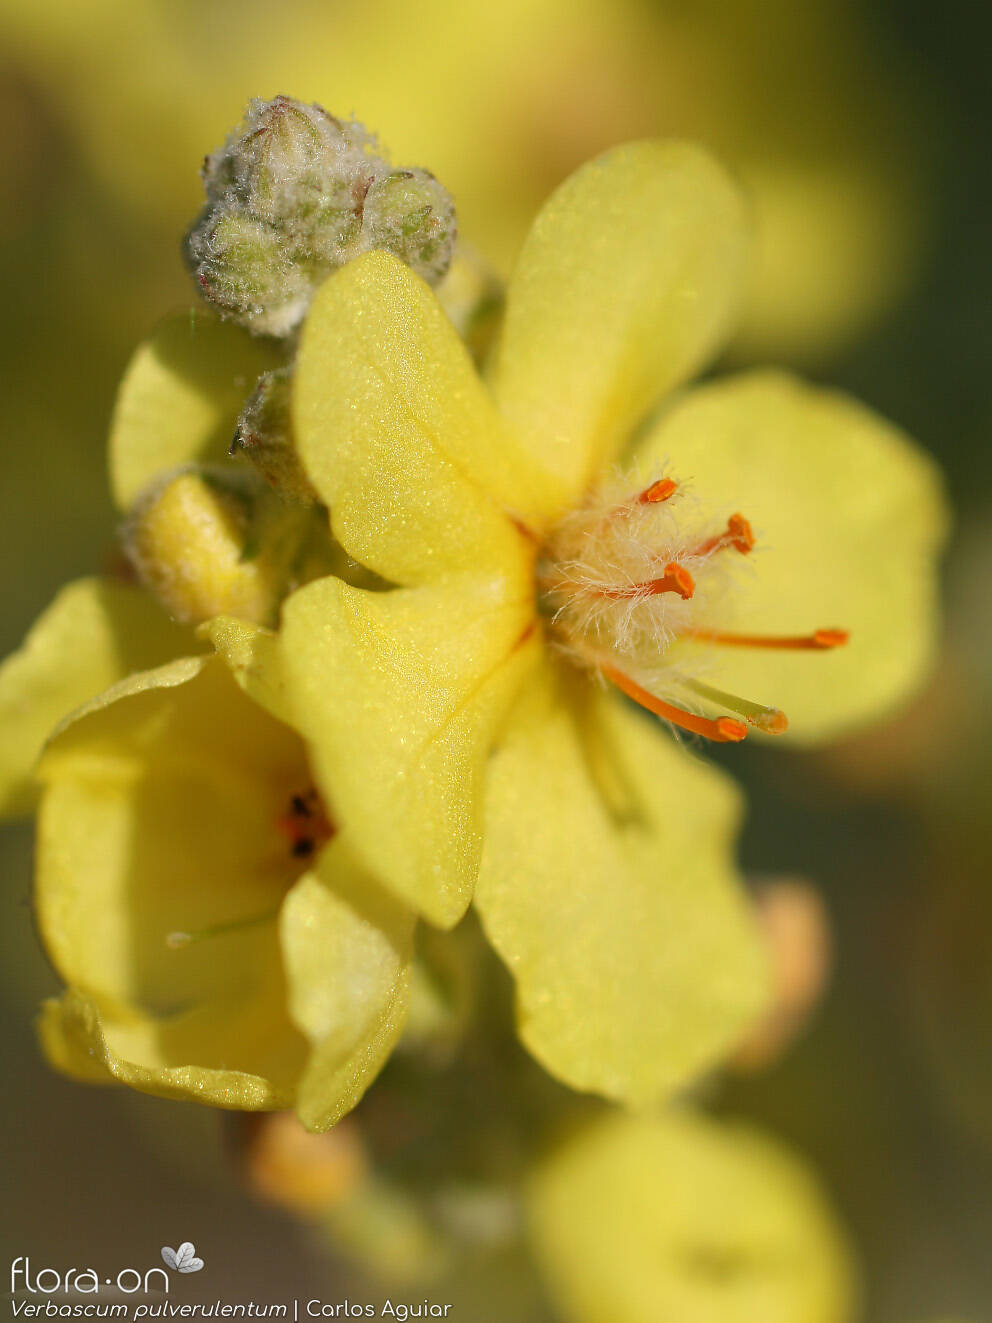 Verbascum pulverulentum - Flor (close-up) | Carlos Aguiar; CC BY-NC 4.0